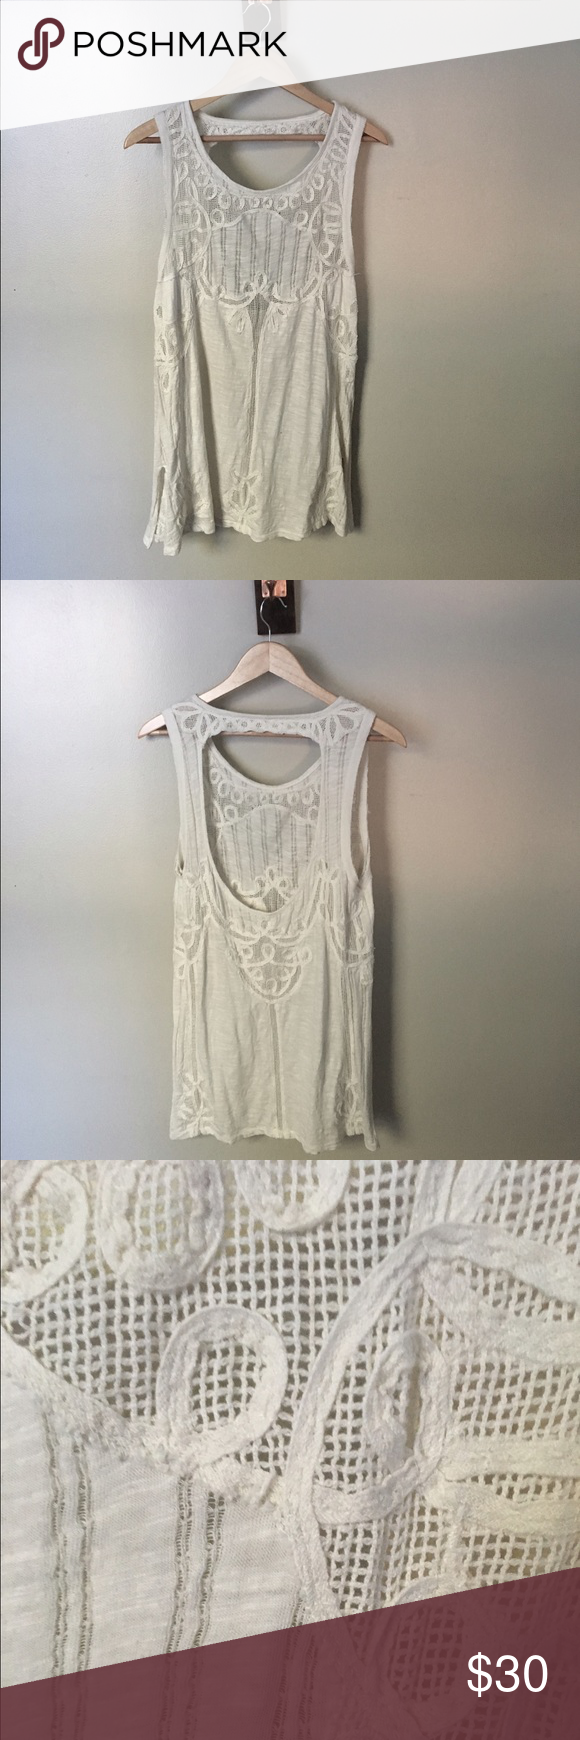 Free People Crochet detail tank Like new quality, only worn once or twice. High neck with an open back, very pretty design. Free People Tops Tank Tops